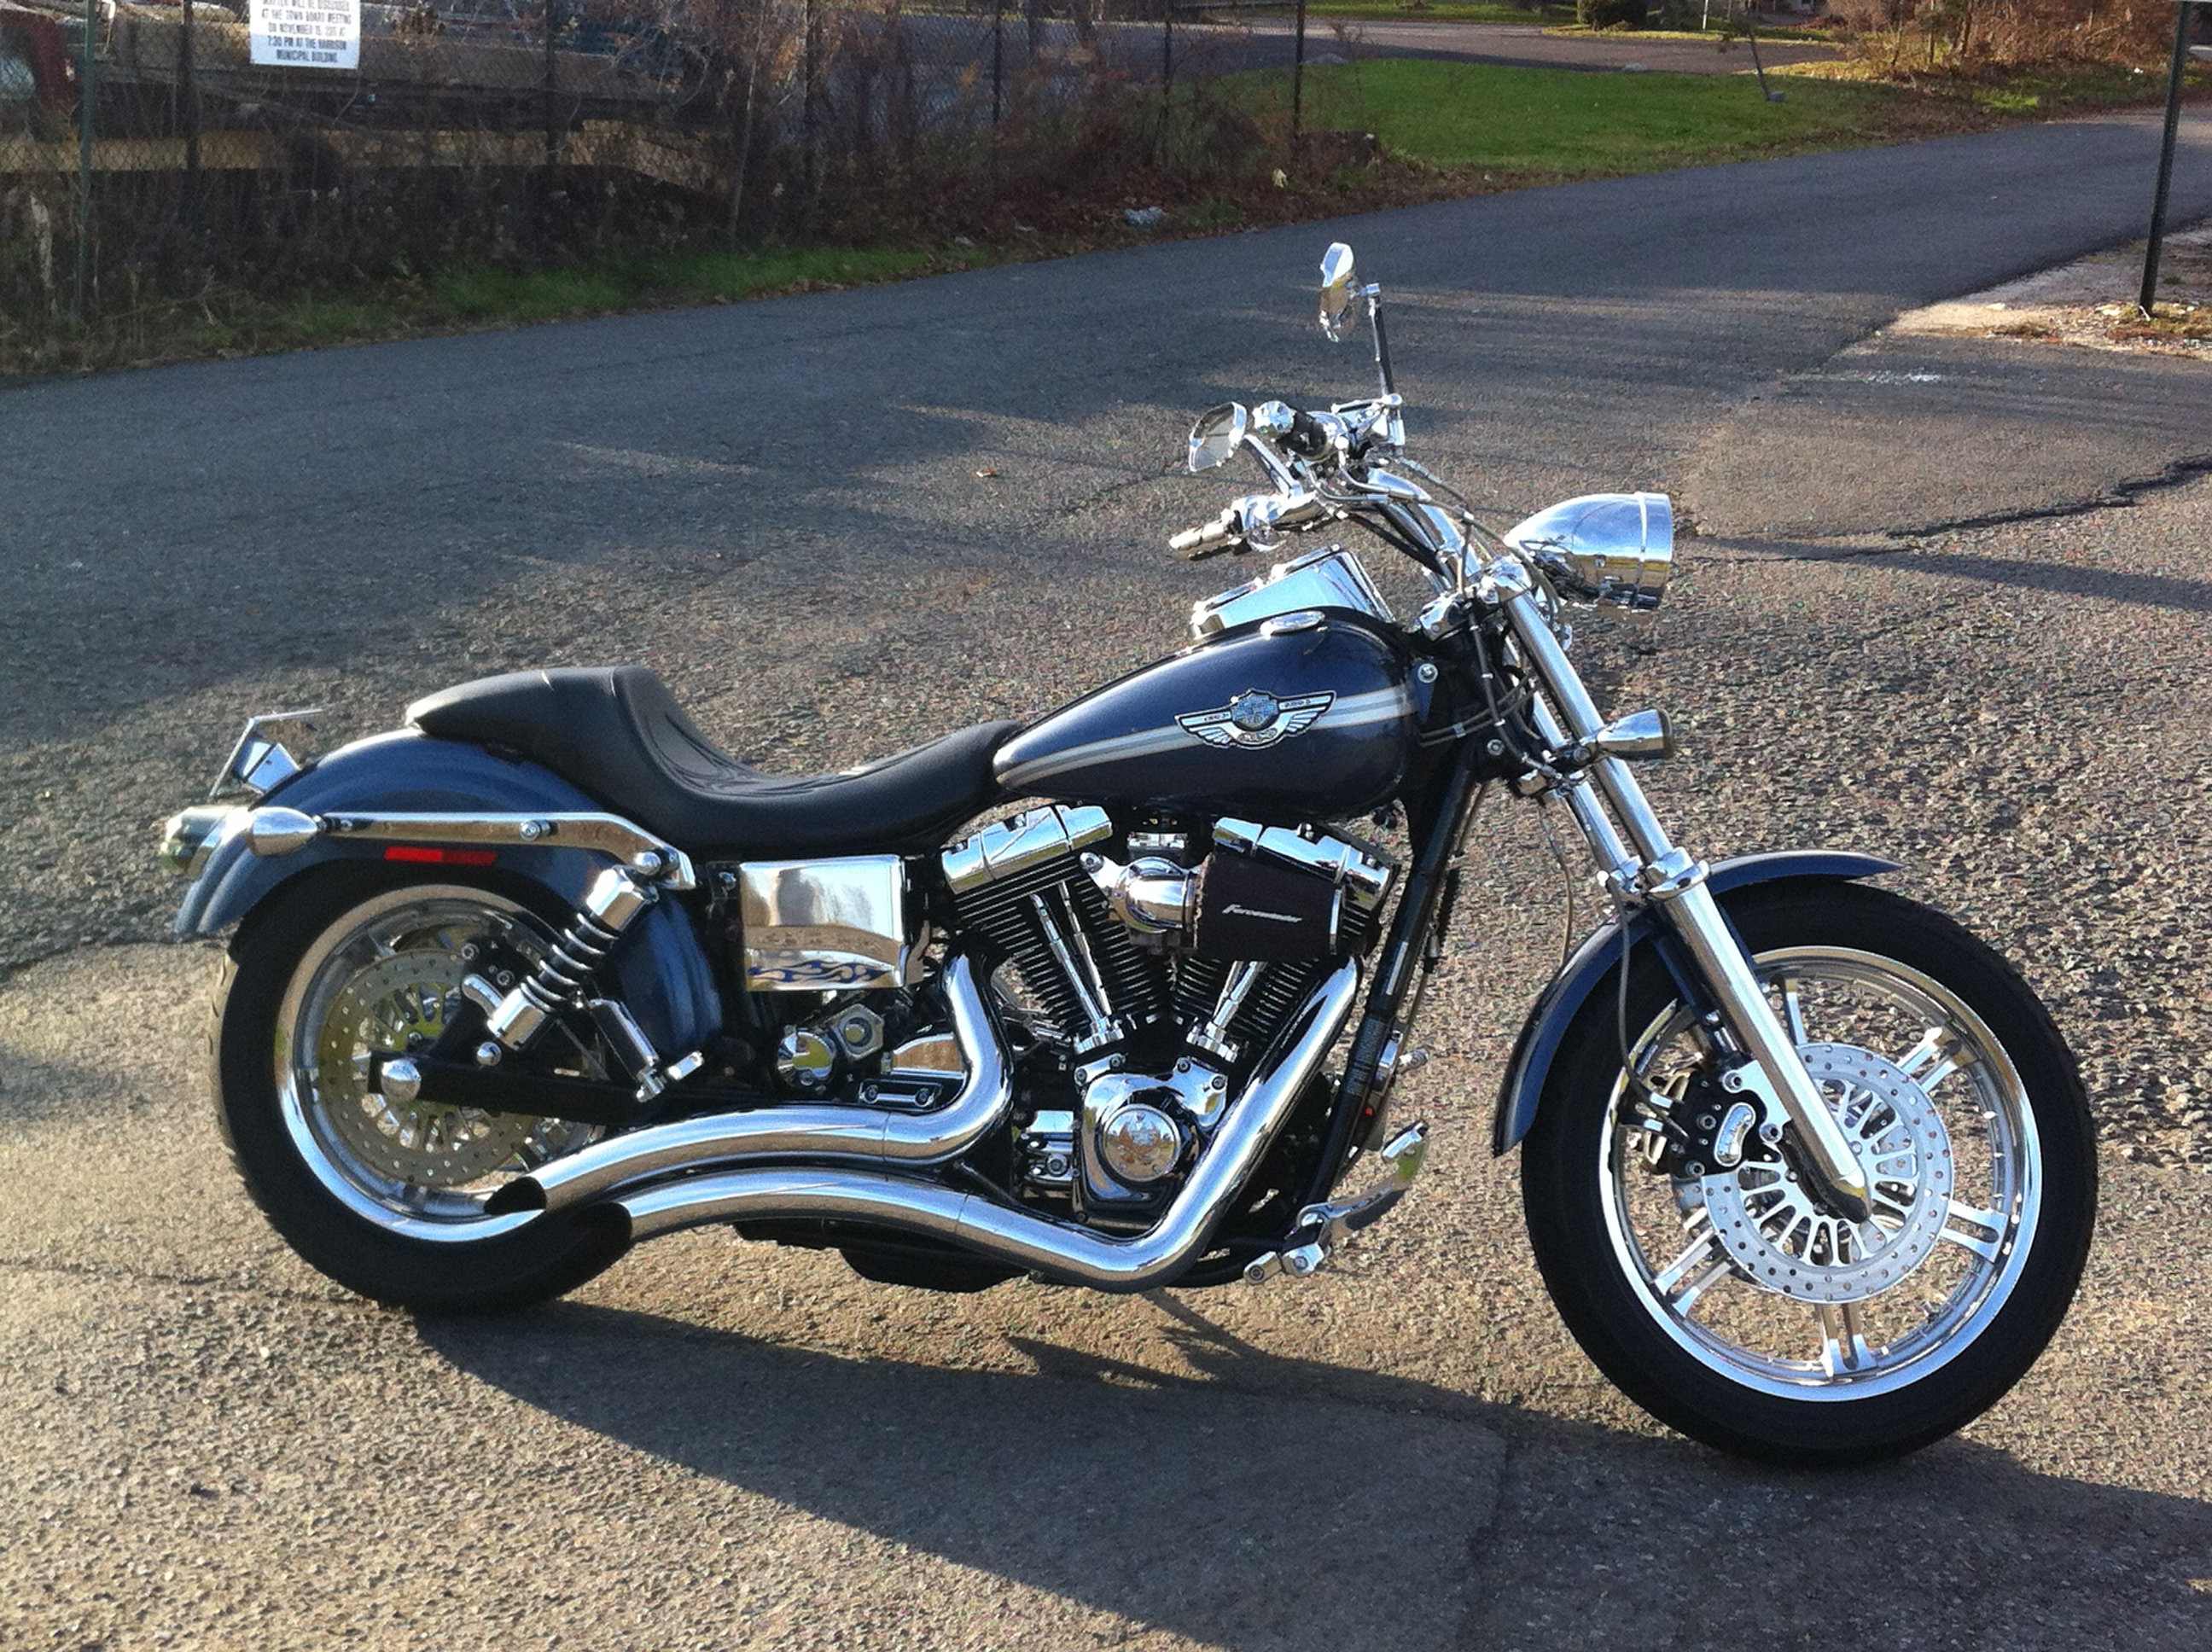 Pics of your Dyna/FXR-picture-011.jpg